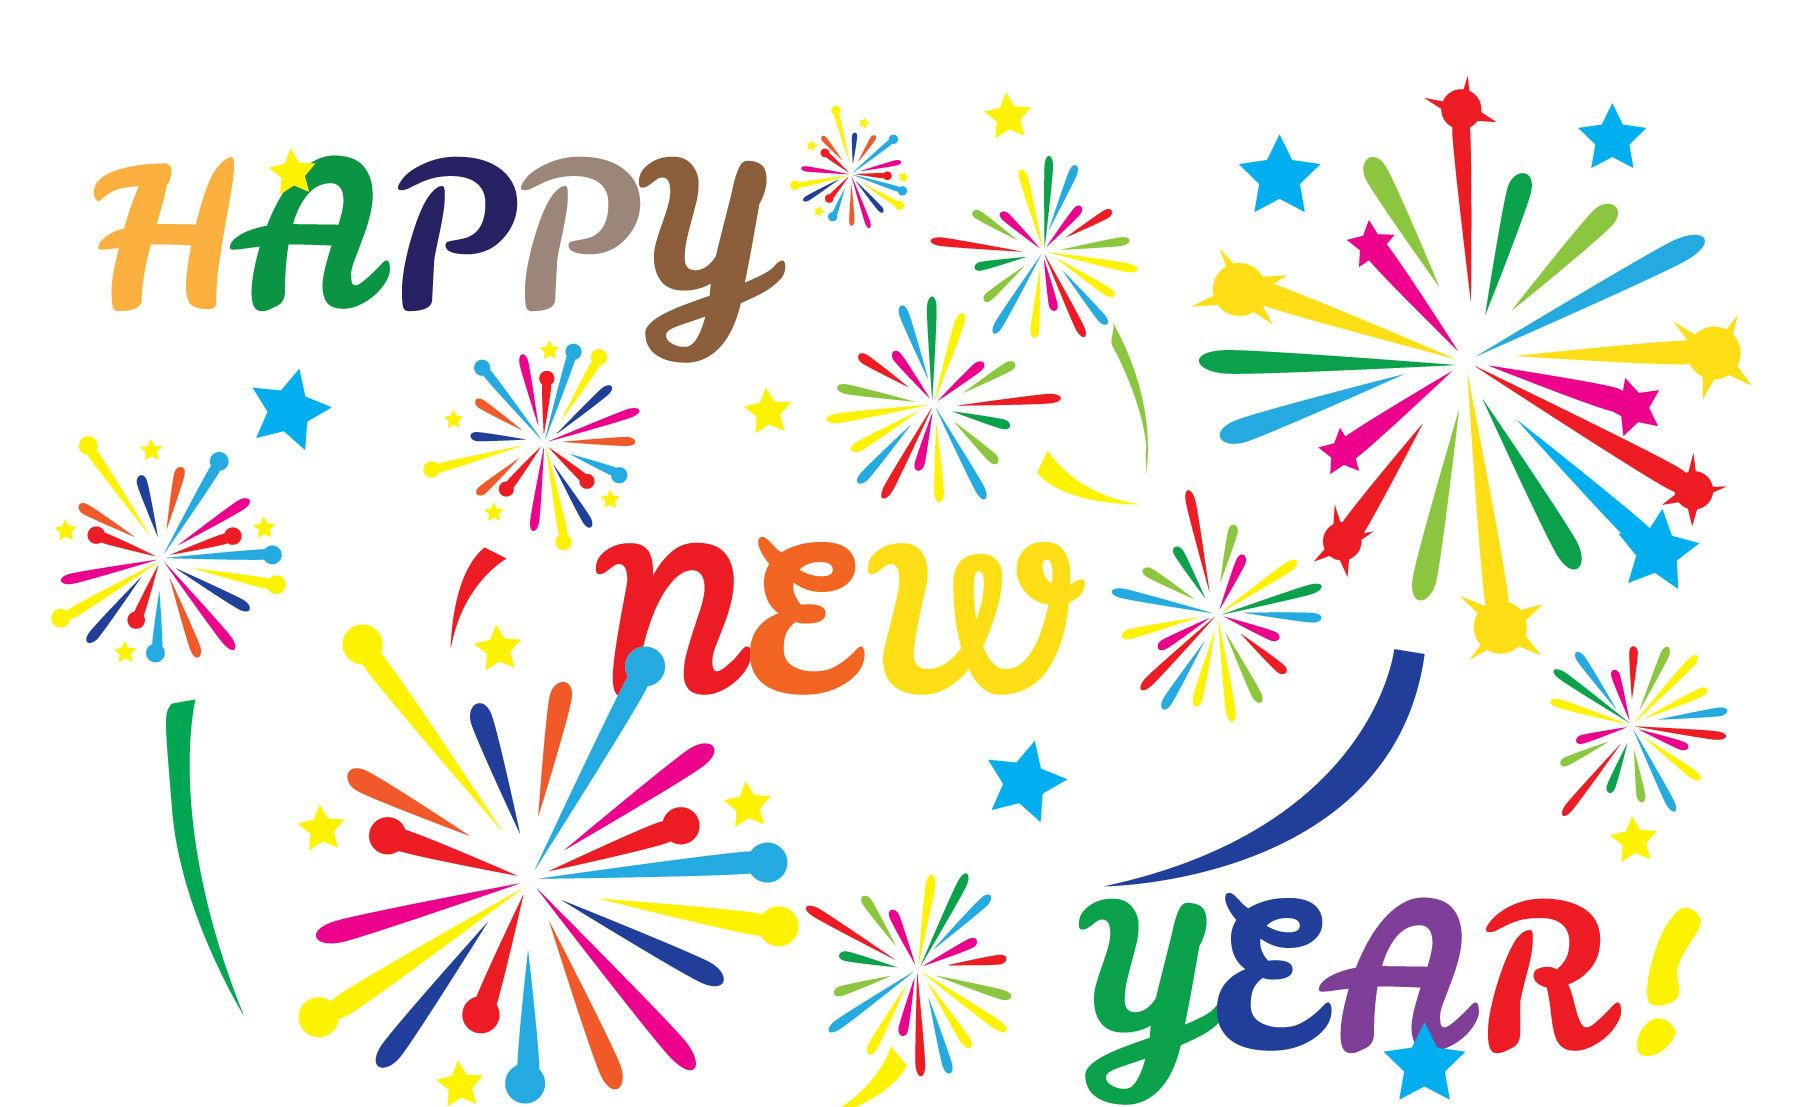 Gold 2016 happy new year printables clipart library Gold 2016 happy new year printables clipart - ClipartFest library